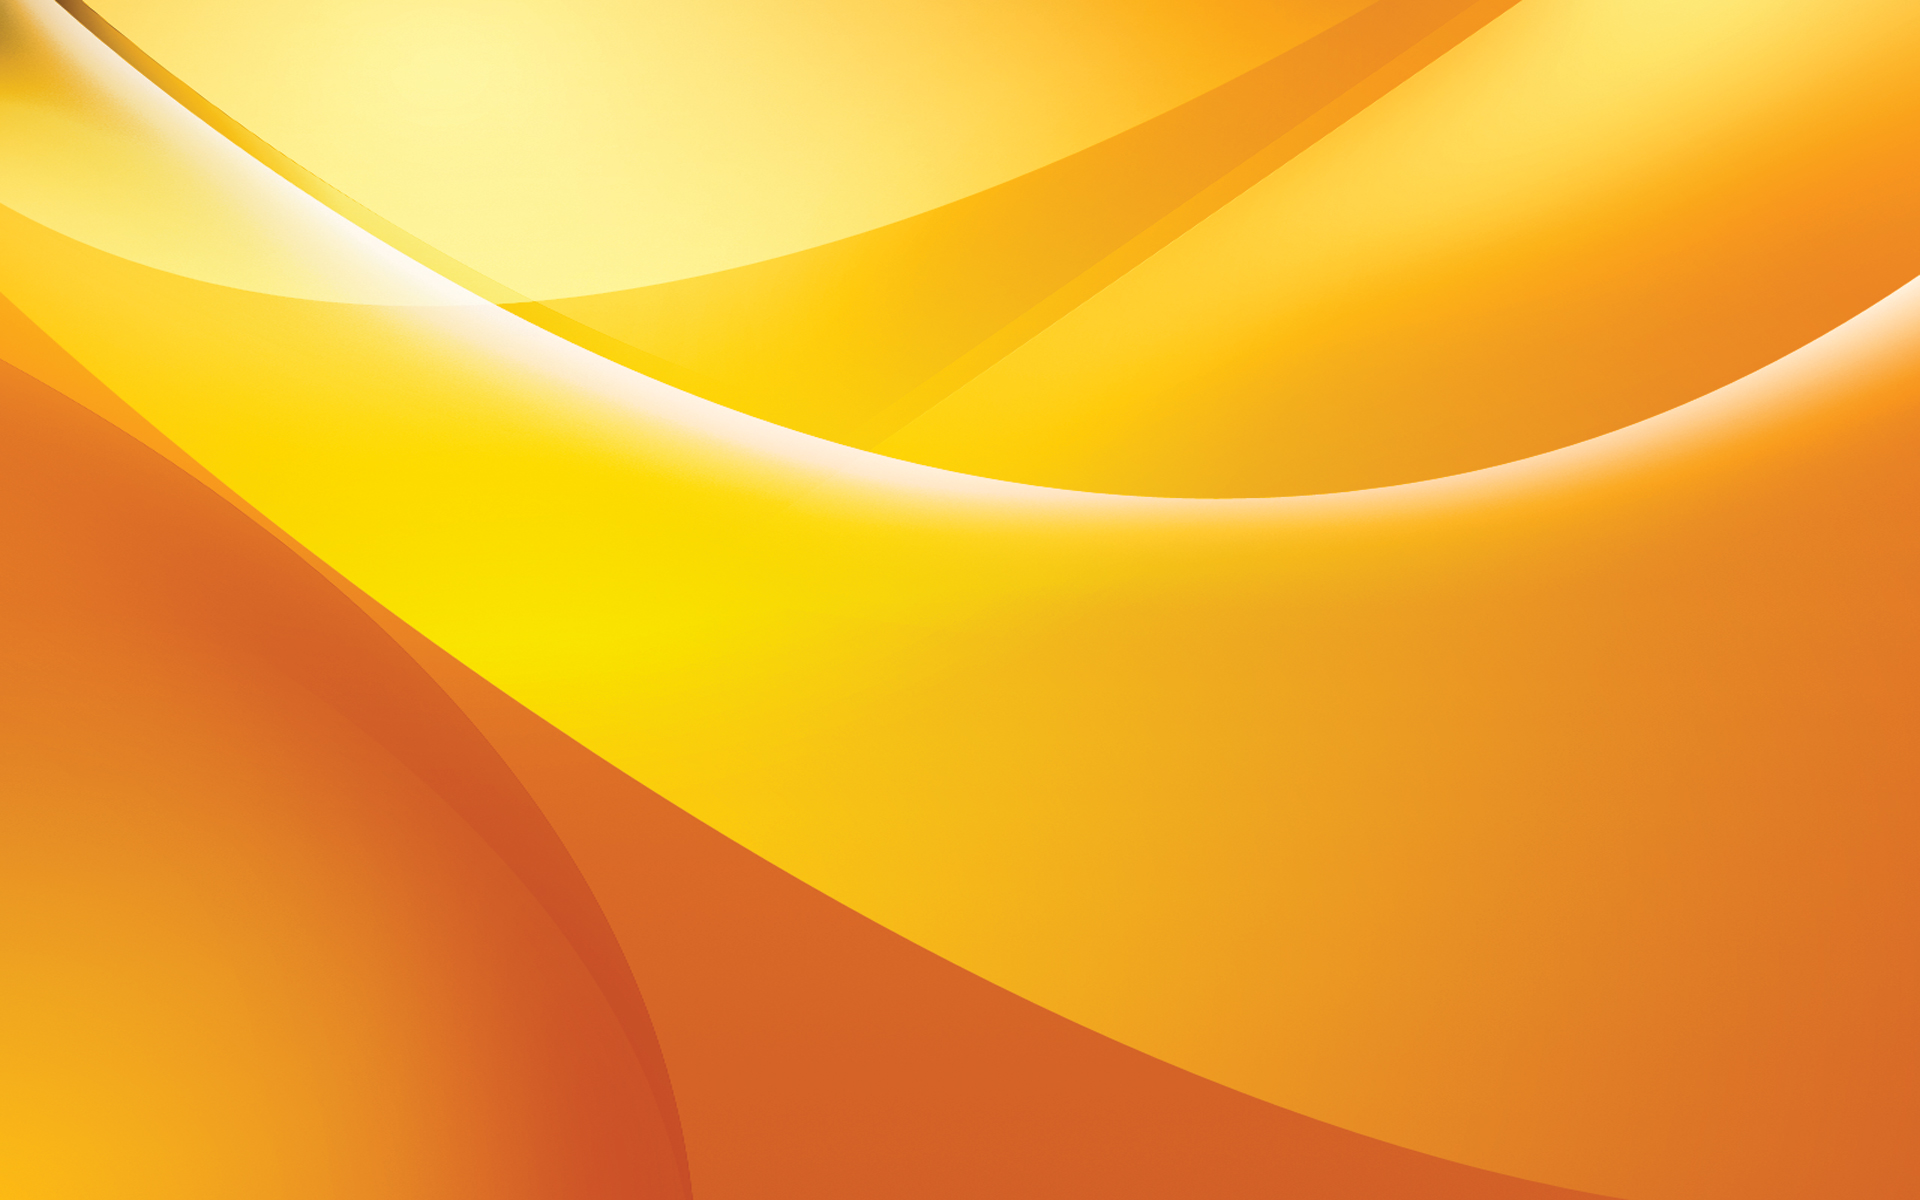 ... Orange curves wallpaper - 91107